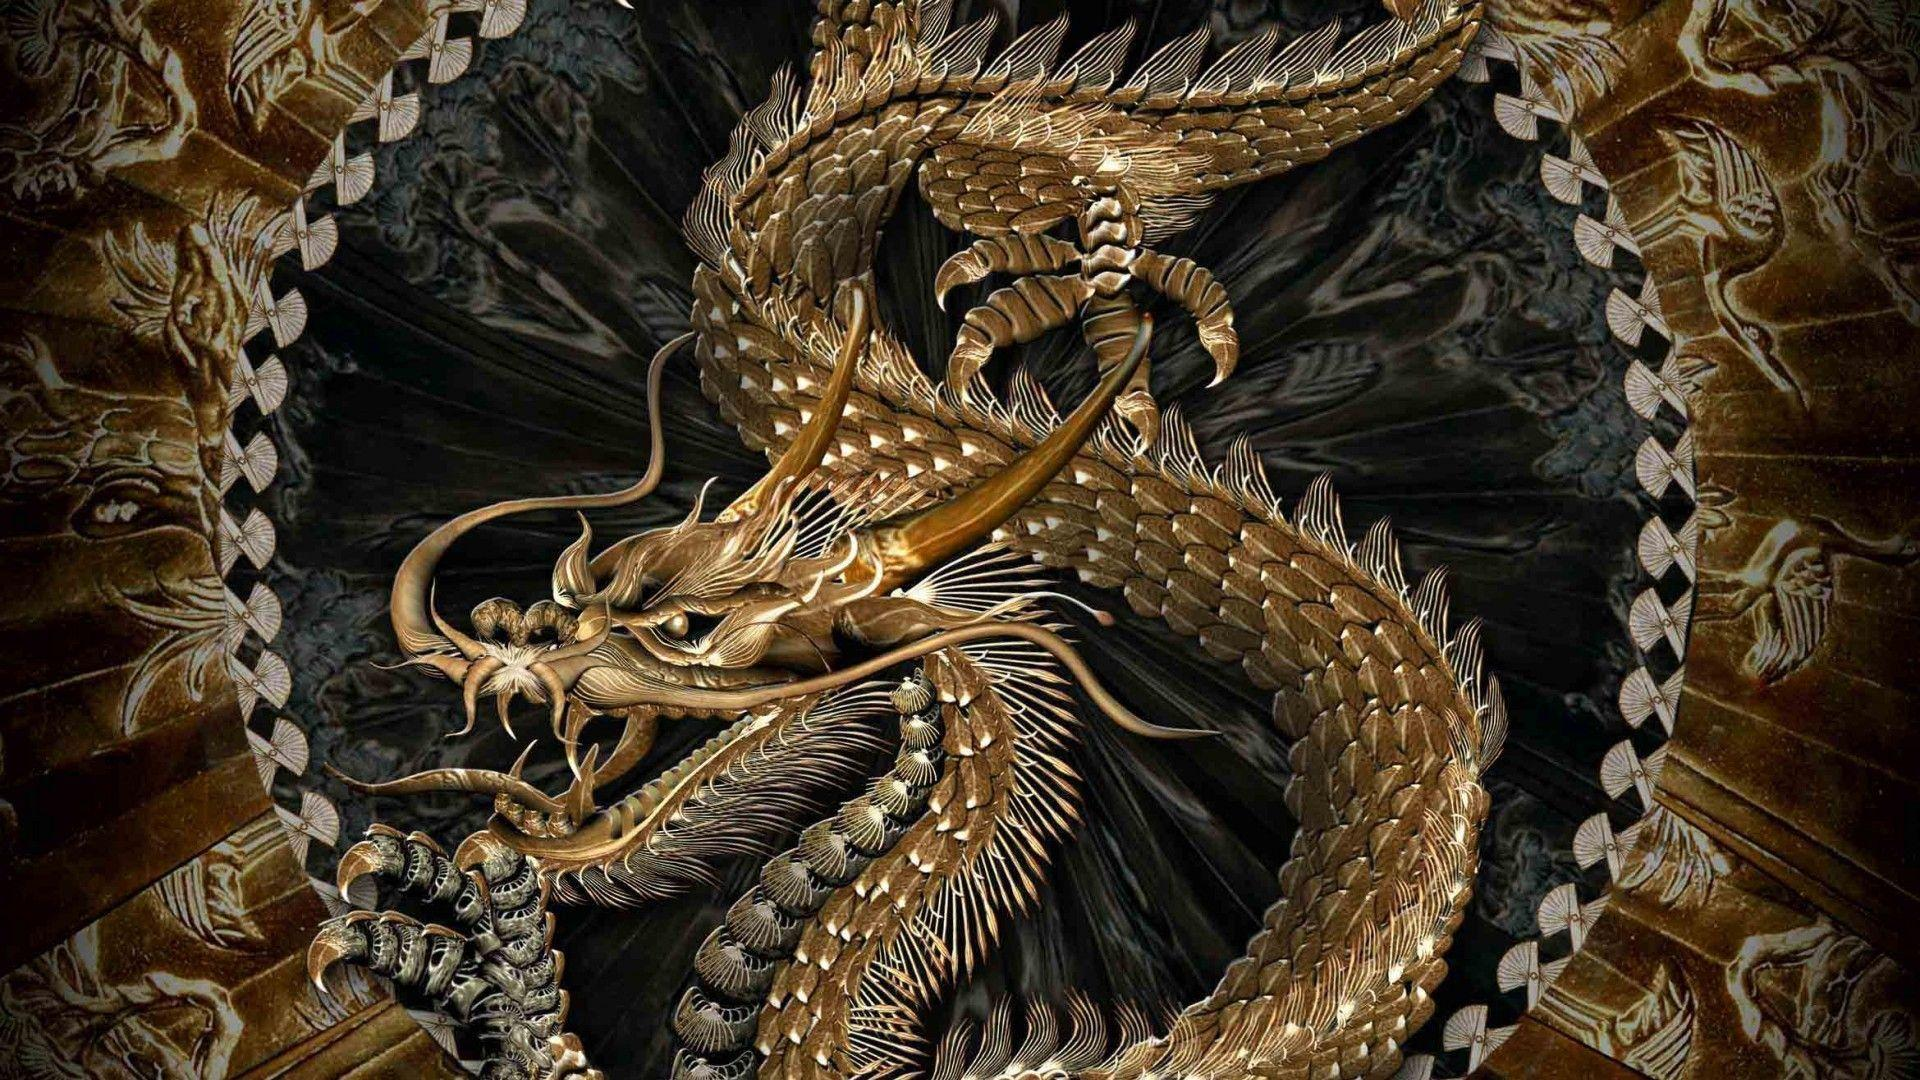 gold dragons wallpaper - photo #33